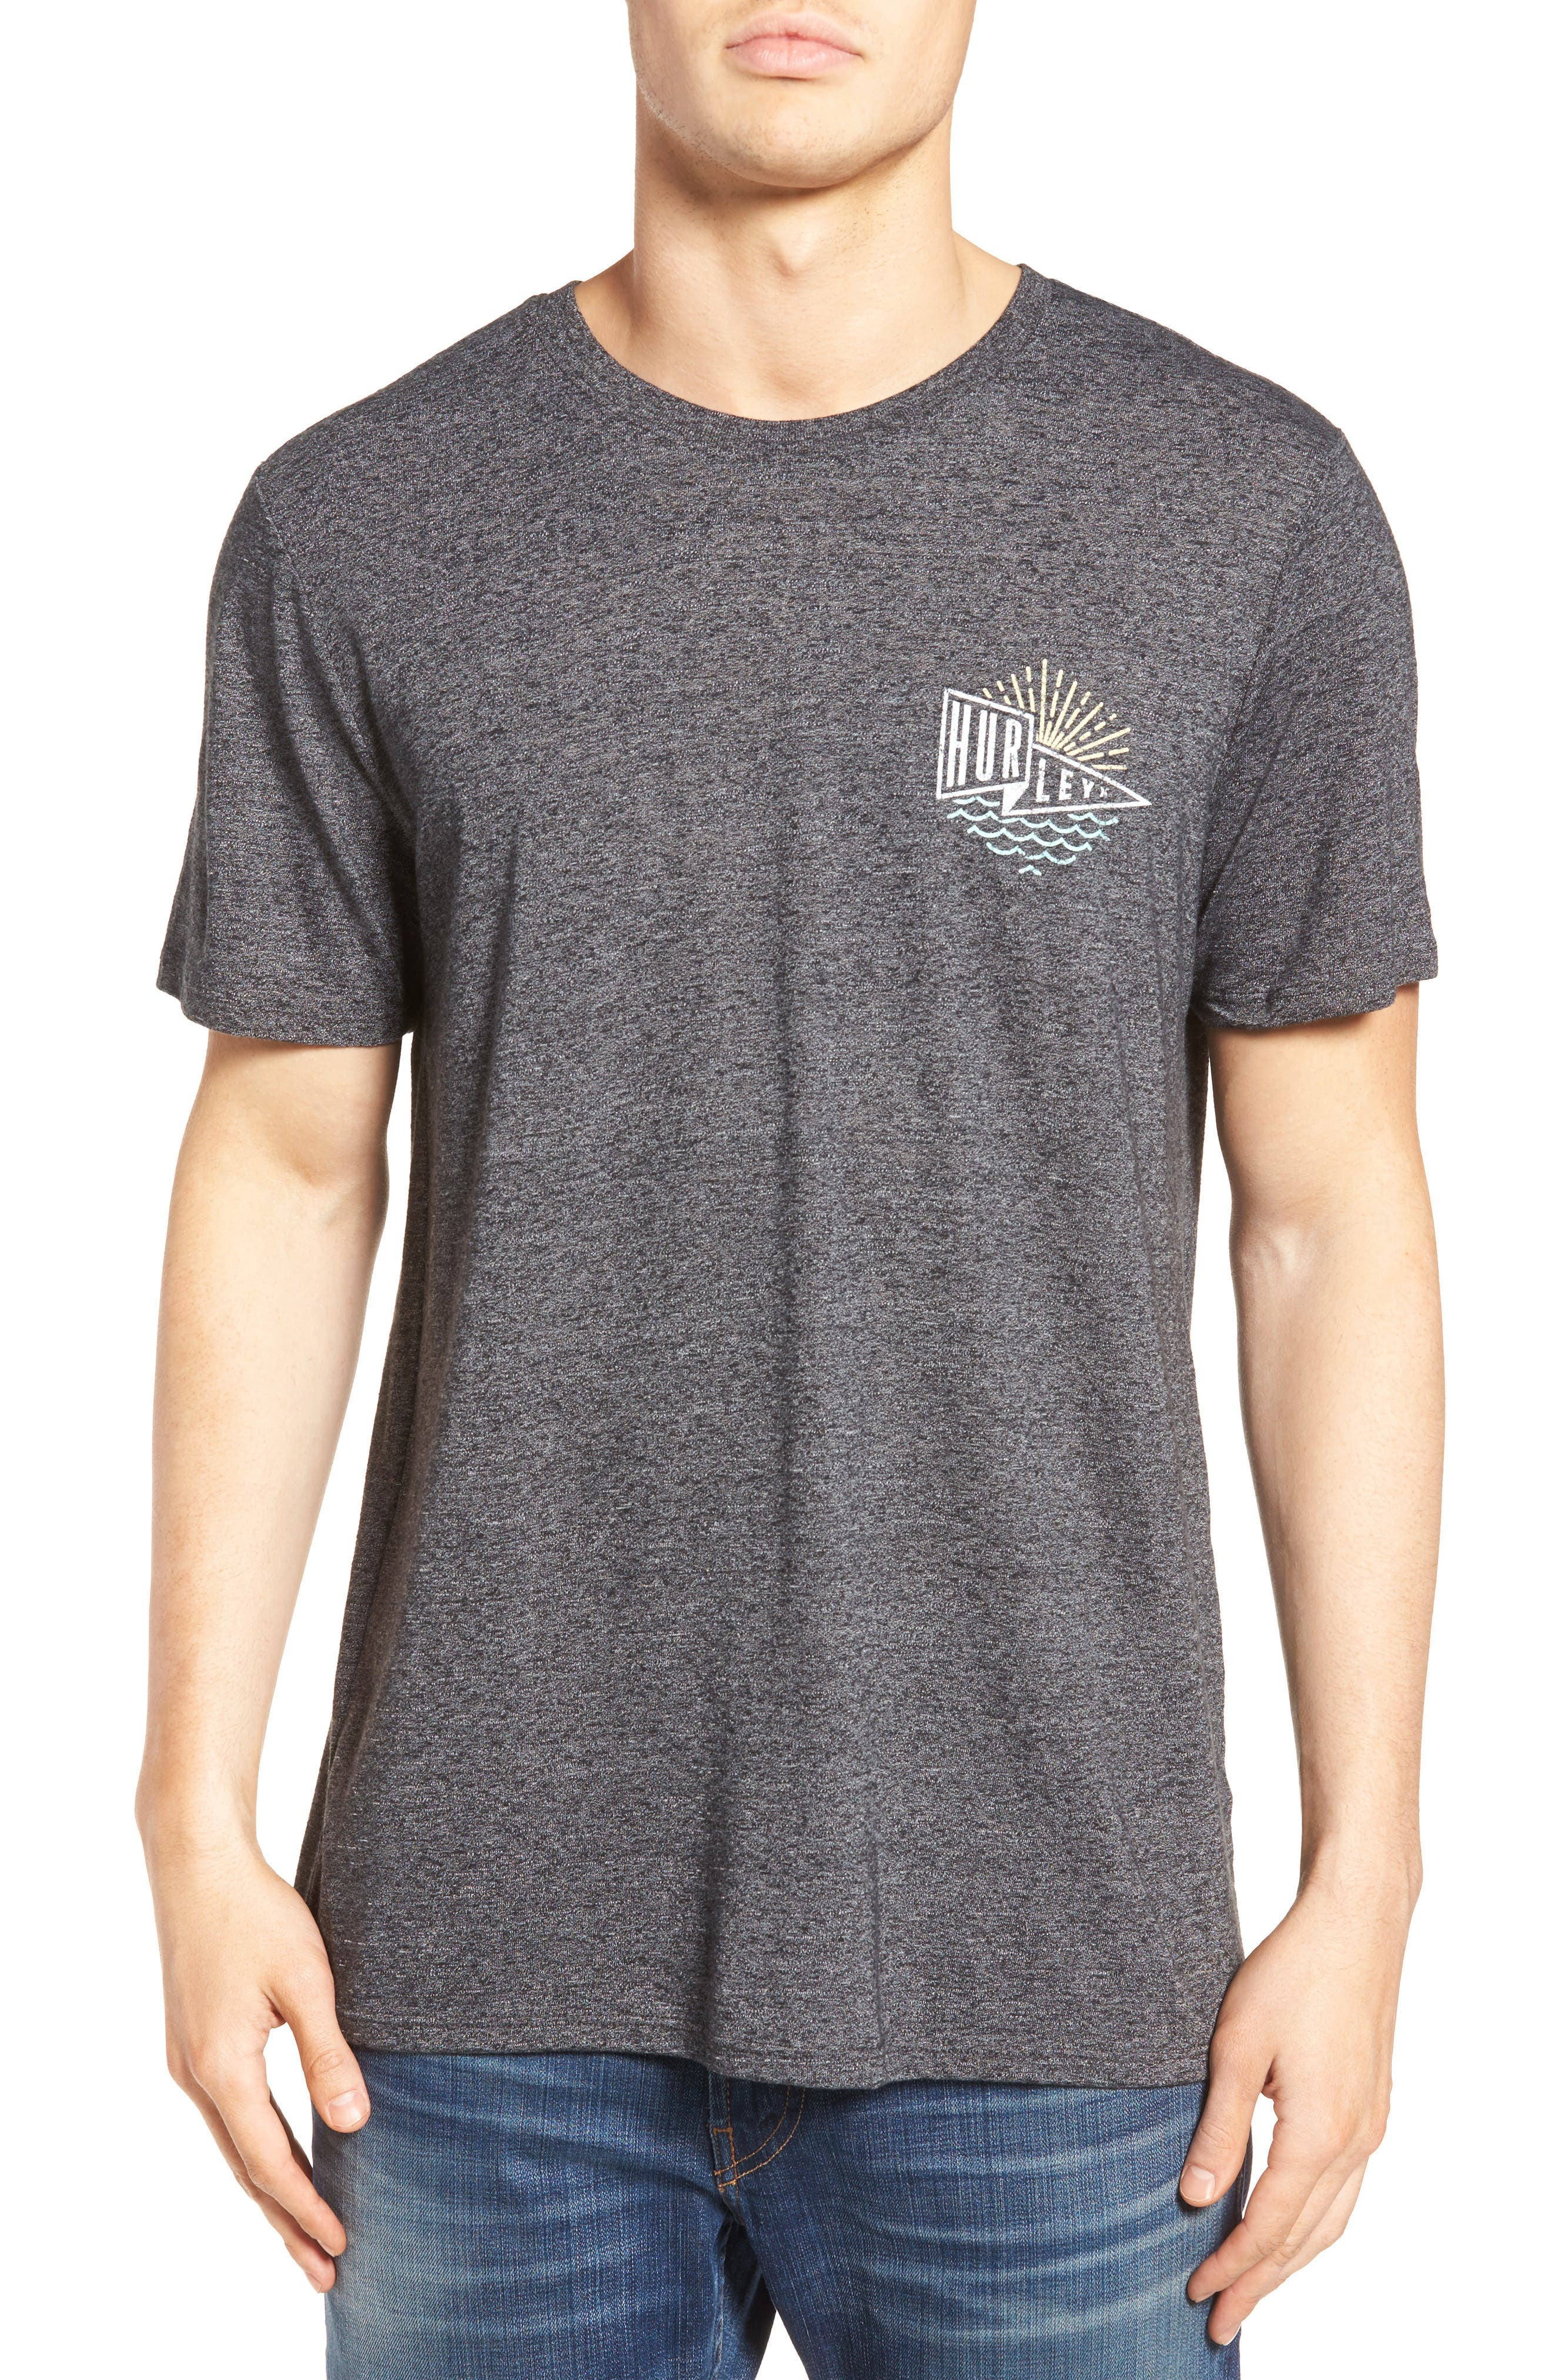 Hurley Graphic T-Shirt